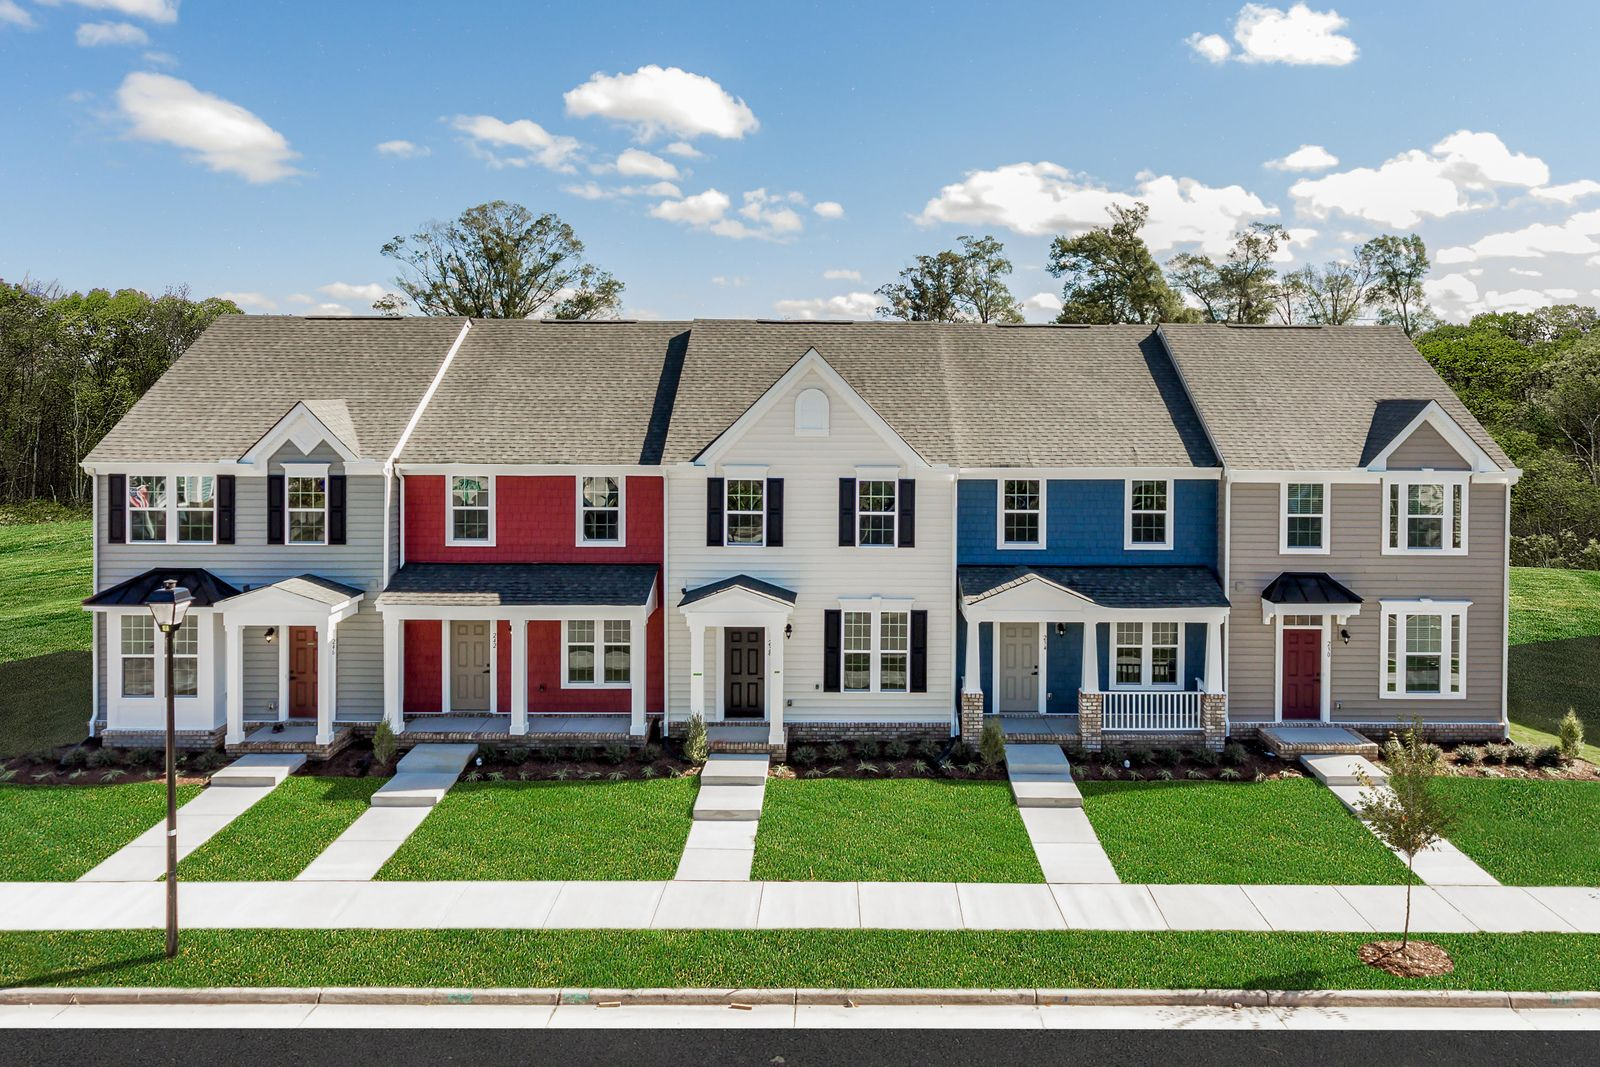 TOWNHOMES FROM THE UPPER $100S:The most affordable new homes in Hampton Roads, starting at $1,200/mo. Enjoy a shorter commute, amenities & no yard work.Click here to schedule a visit today.